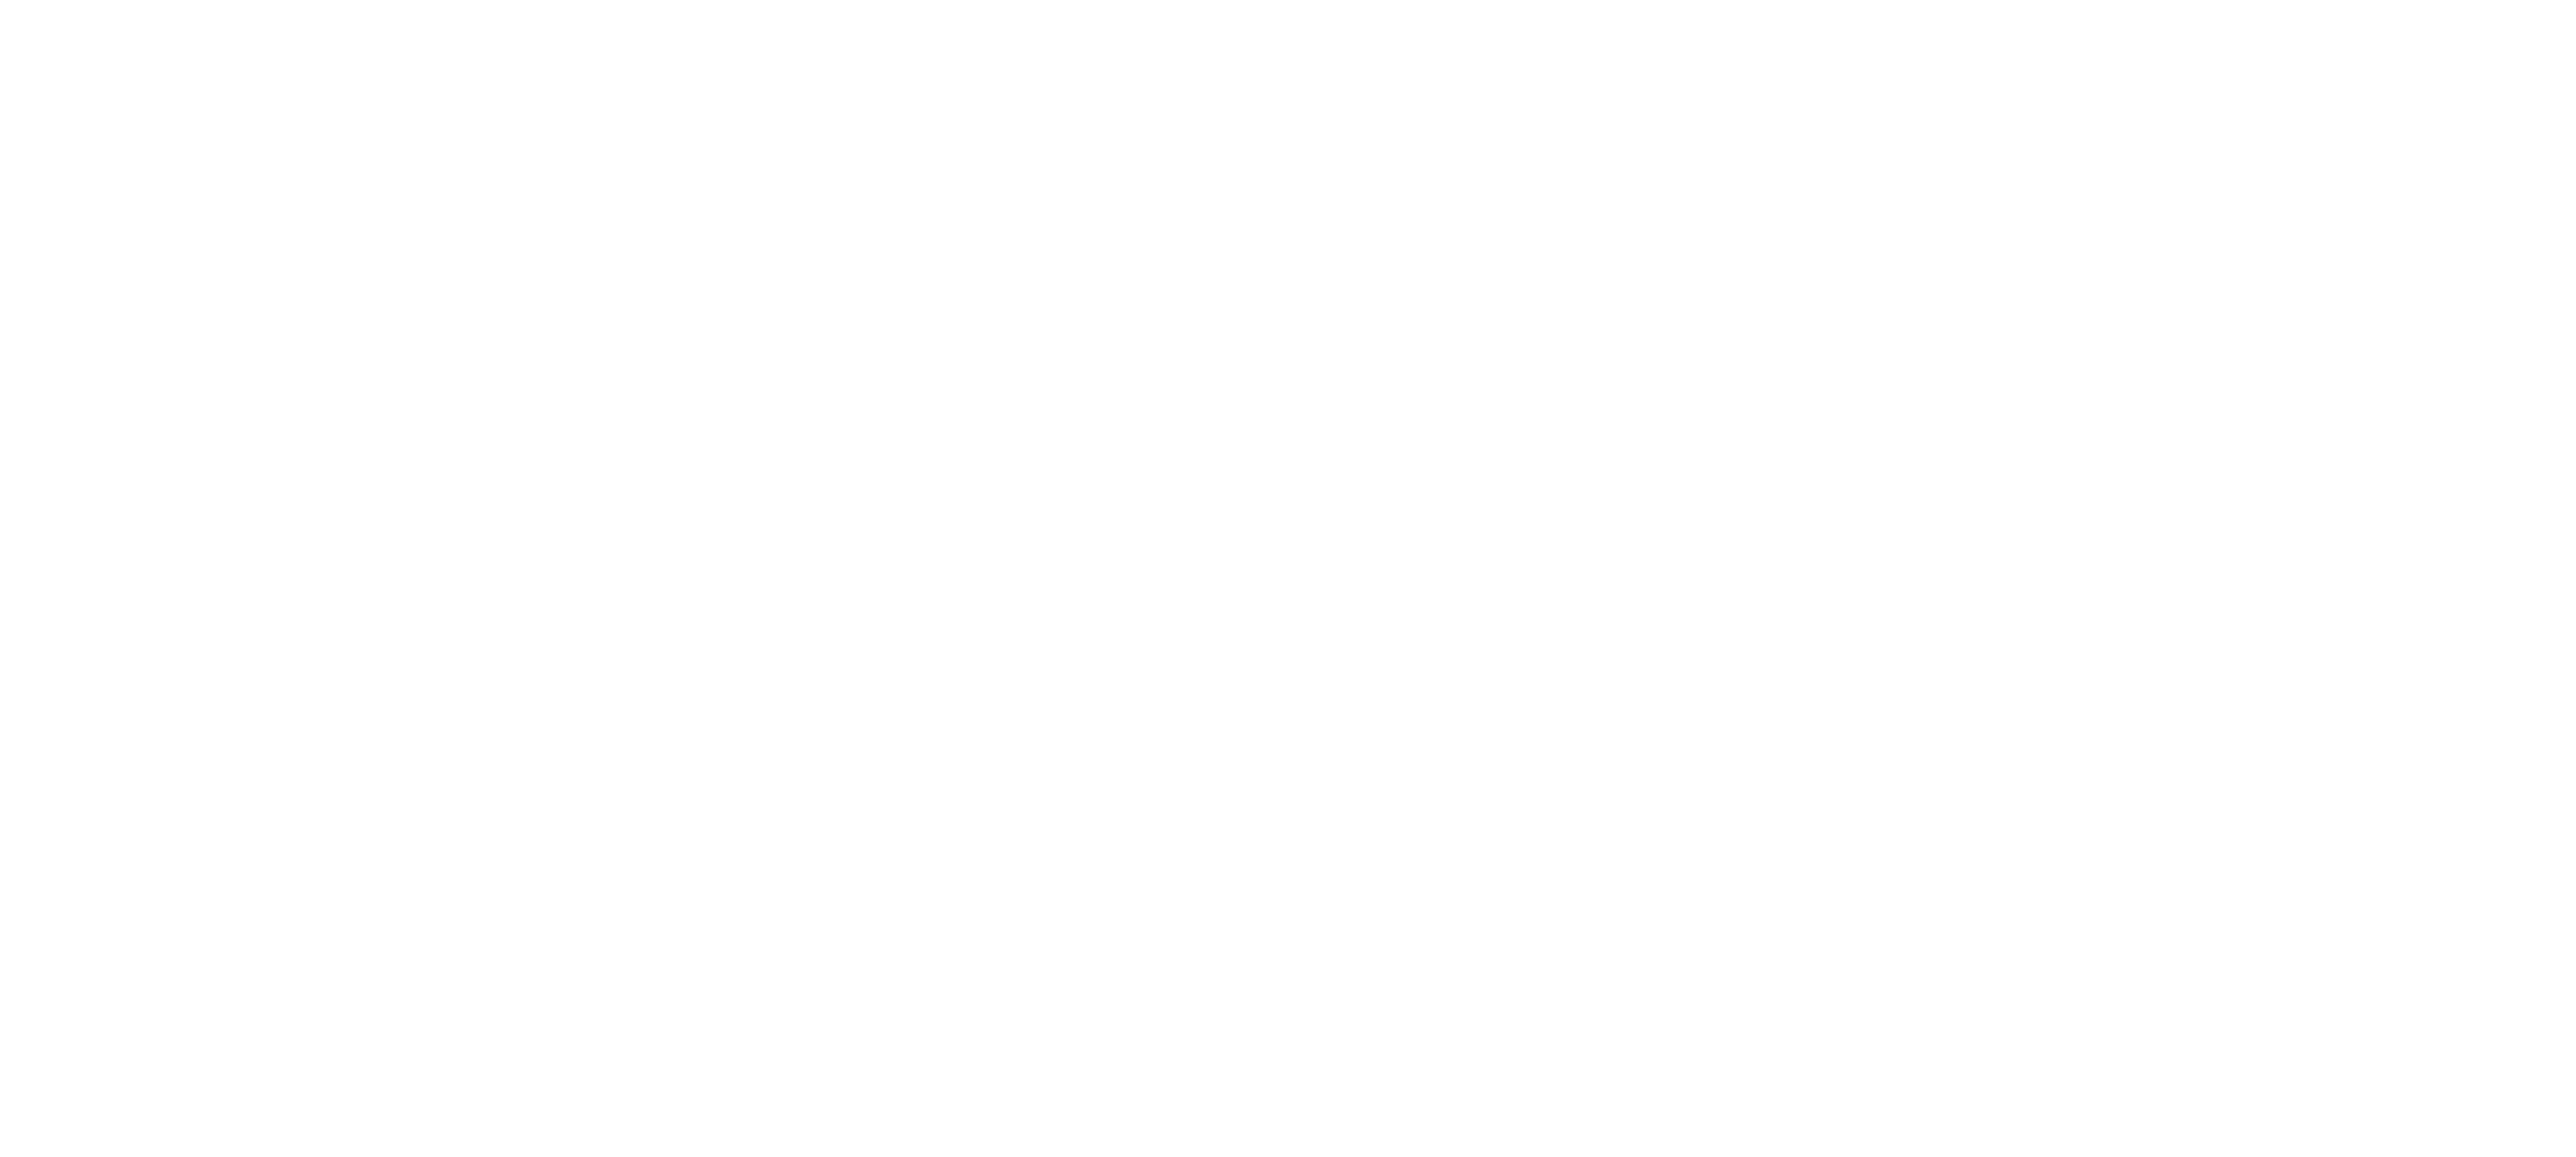 Payouts Network Logo